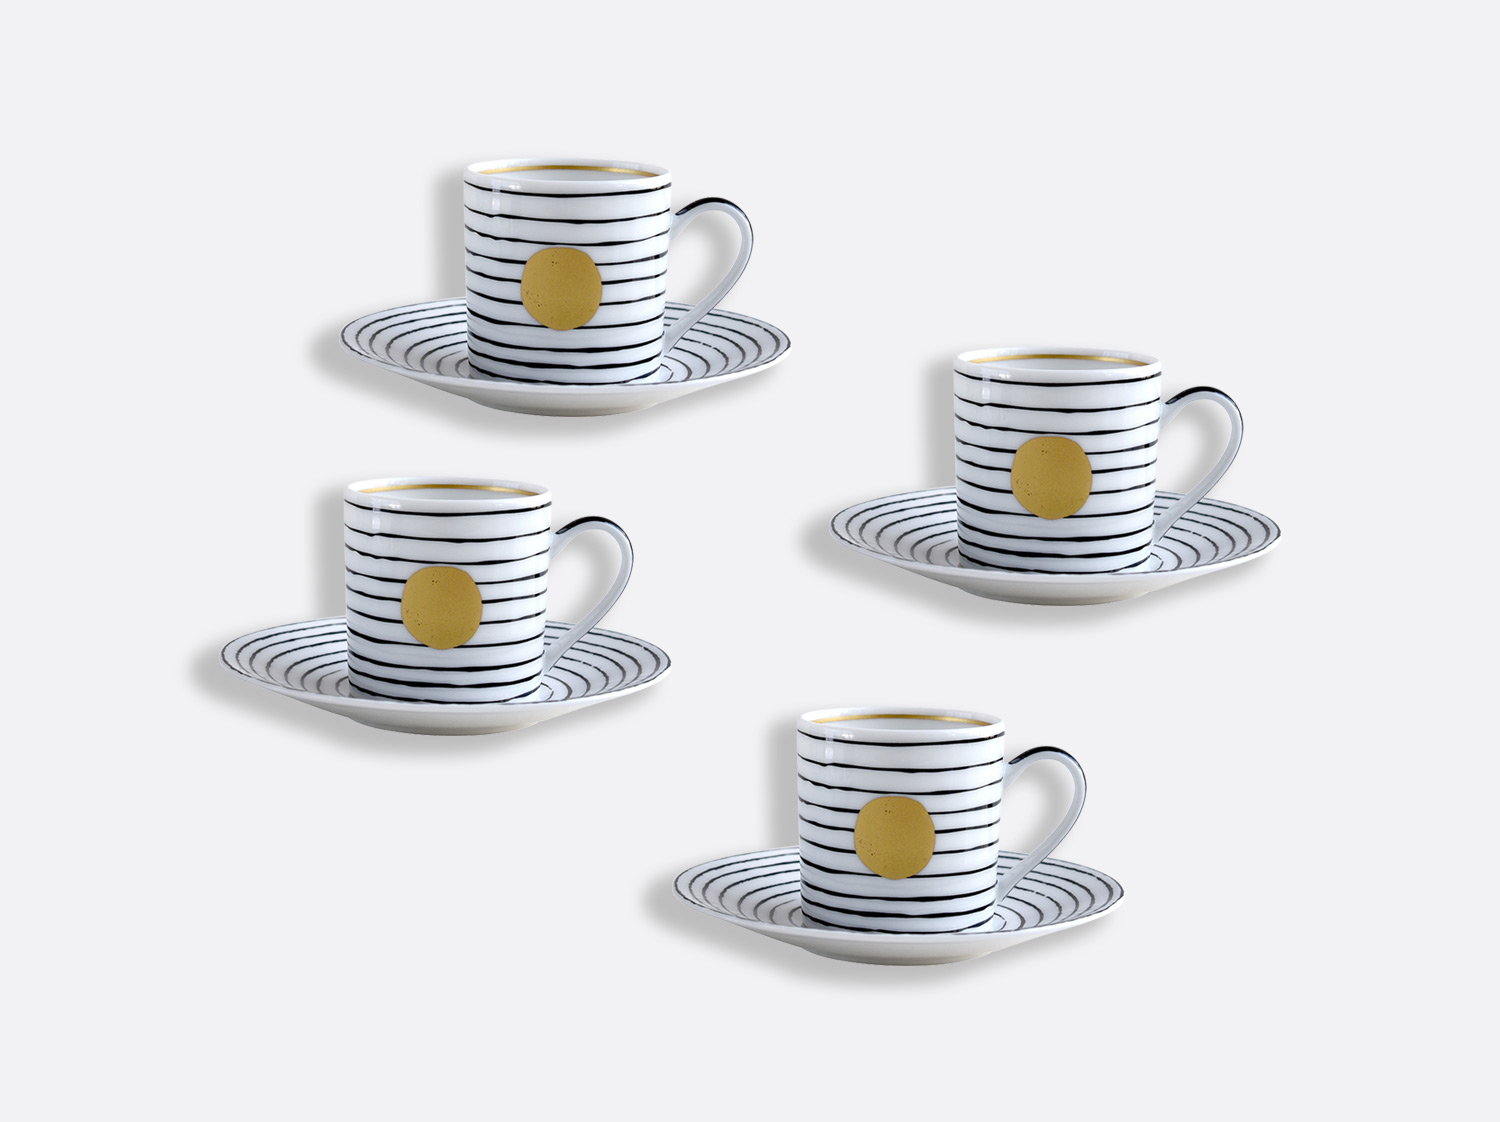 China Espresso cup and saucer gift box - 2.8 Oz - Set of 4 of the collection Aboro Or | Bernardaud